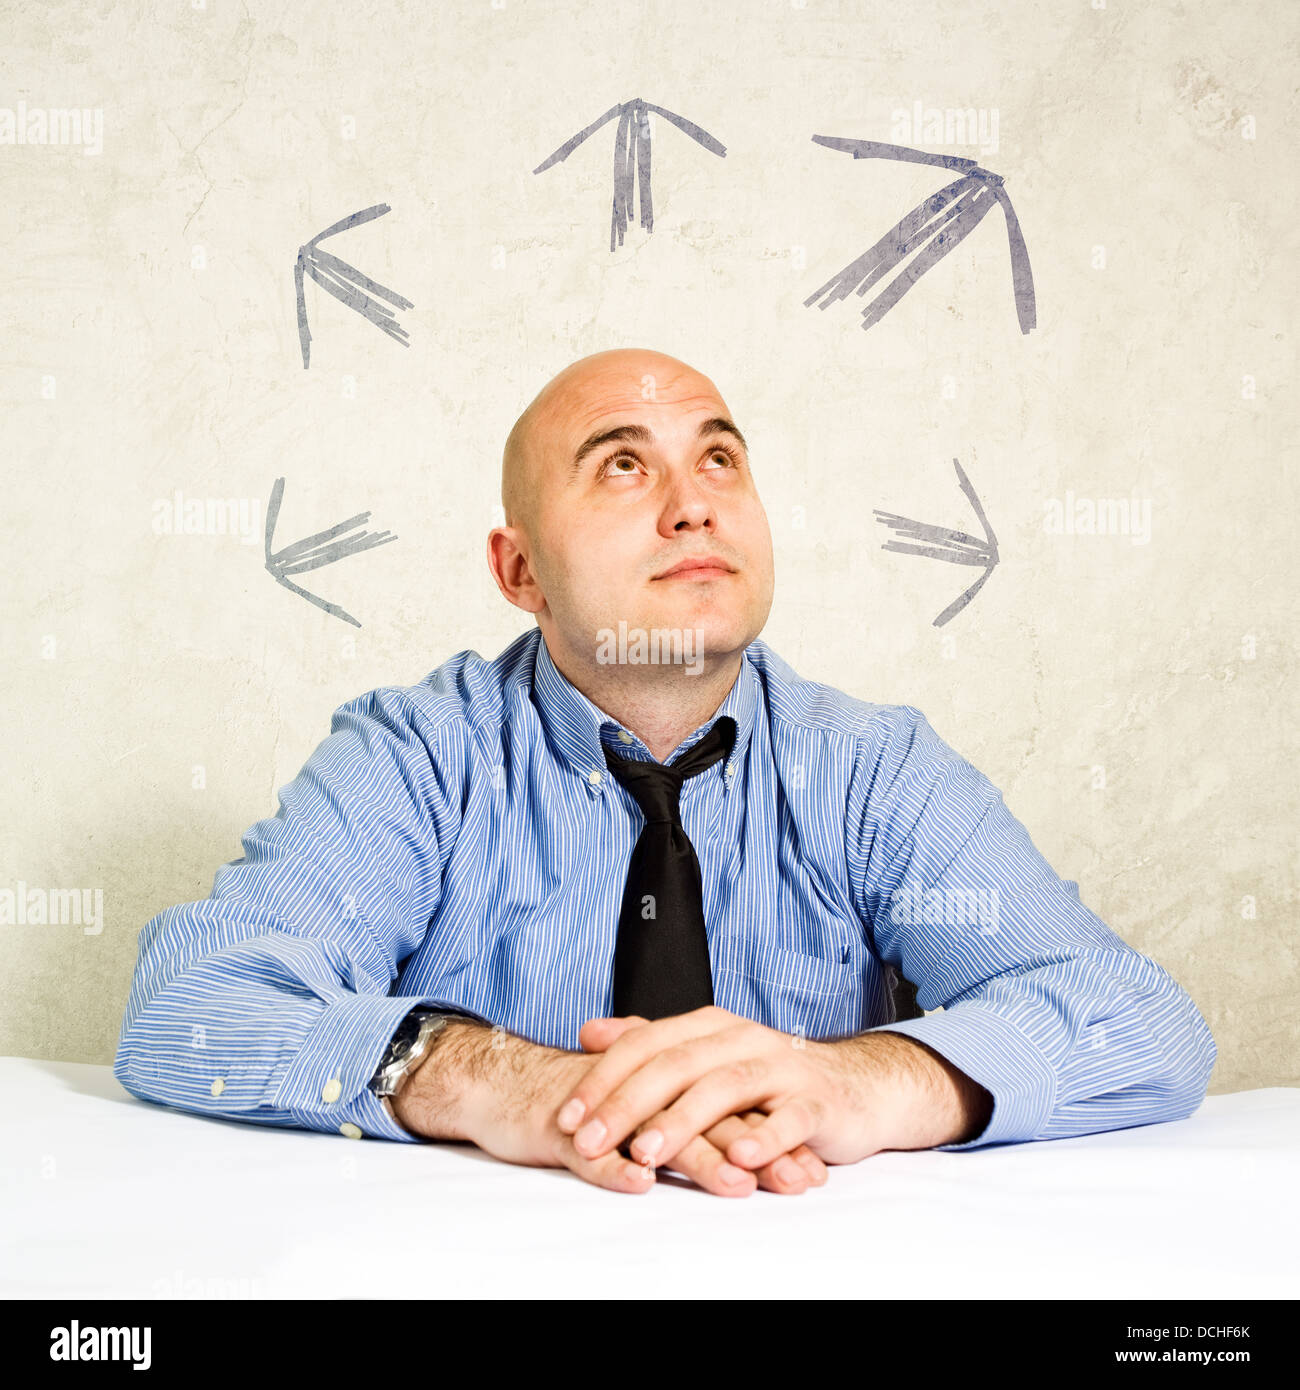 Business man looking upward. Business choice or business options concept. - Stock Image